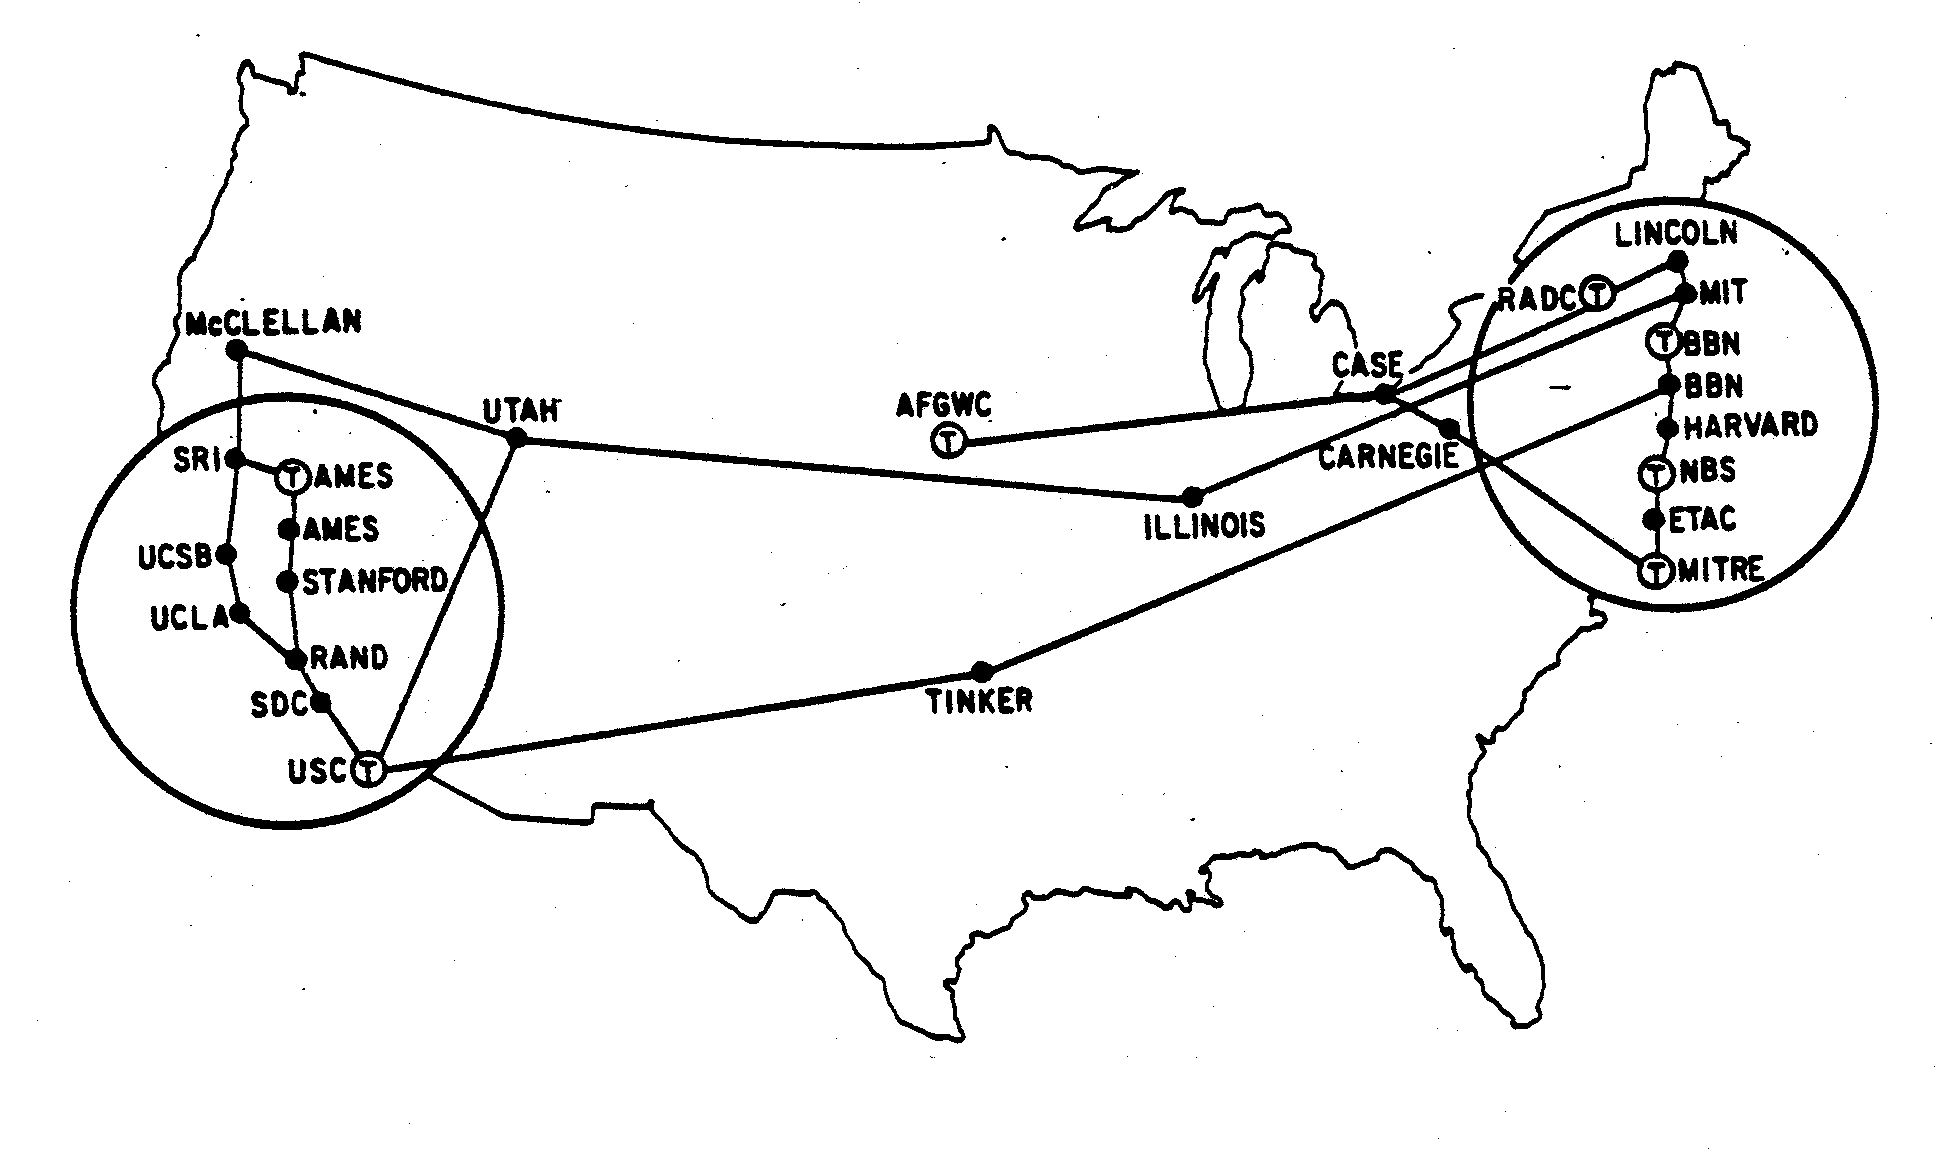 arpanet maps